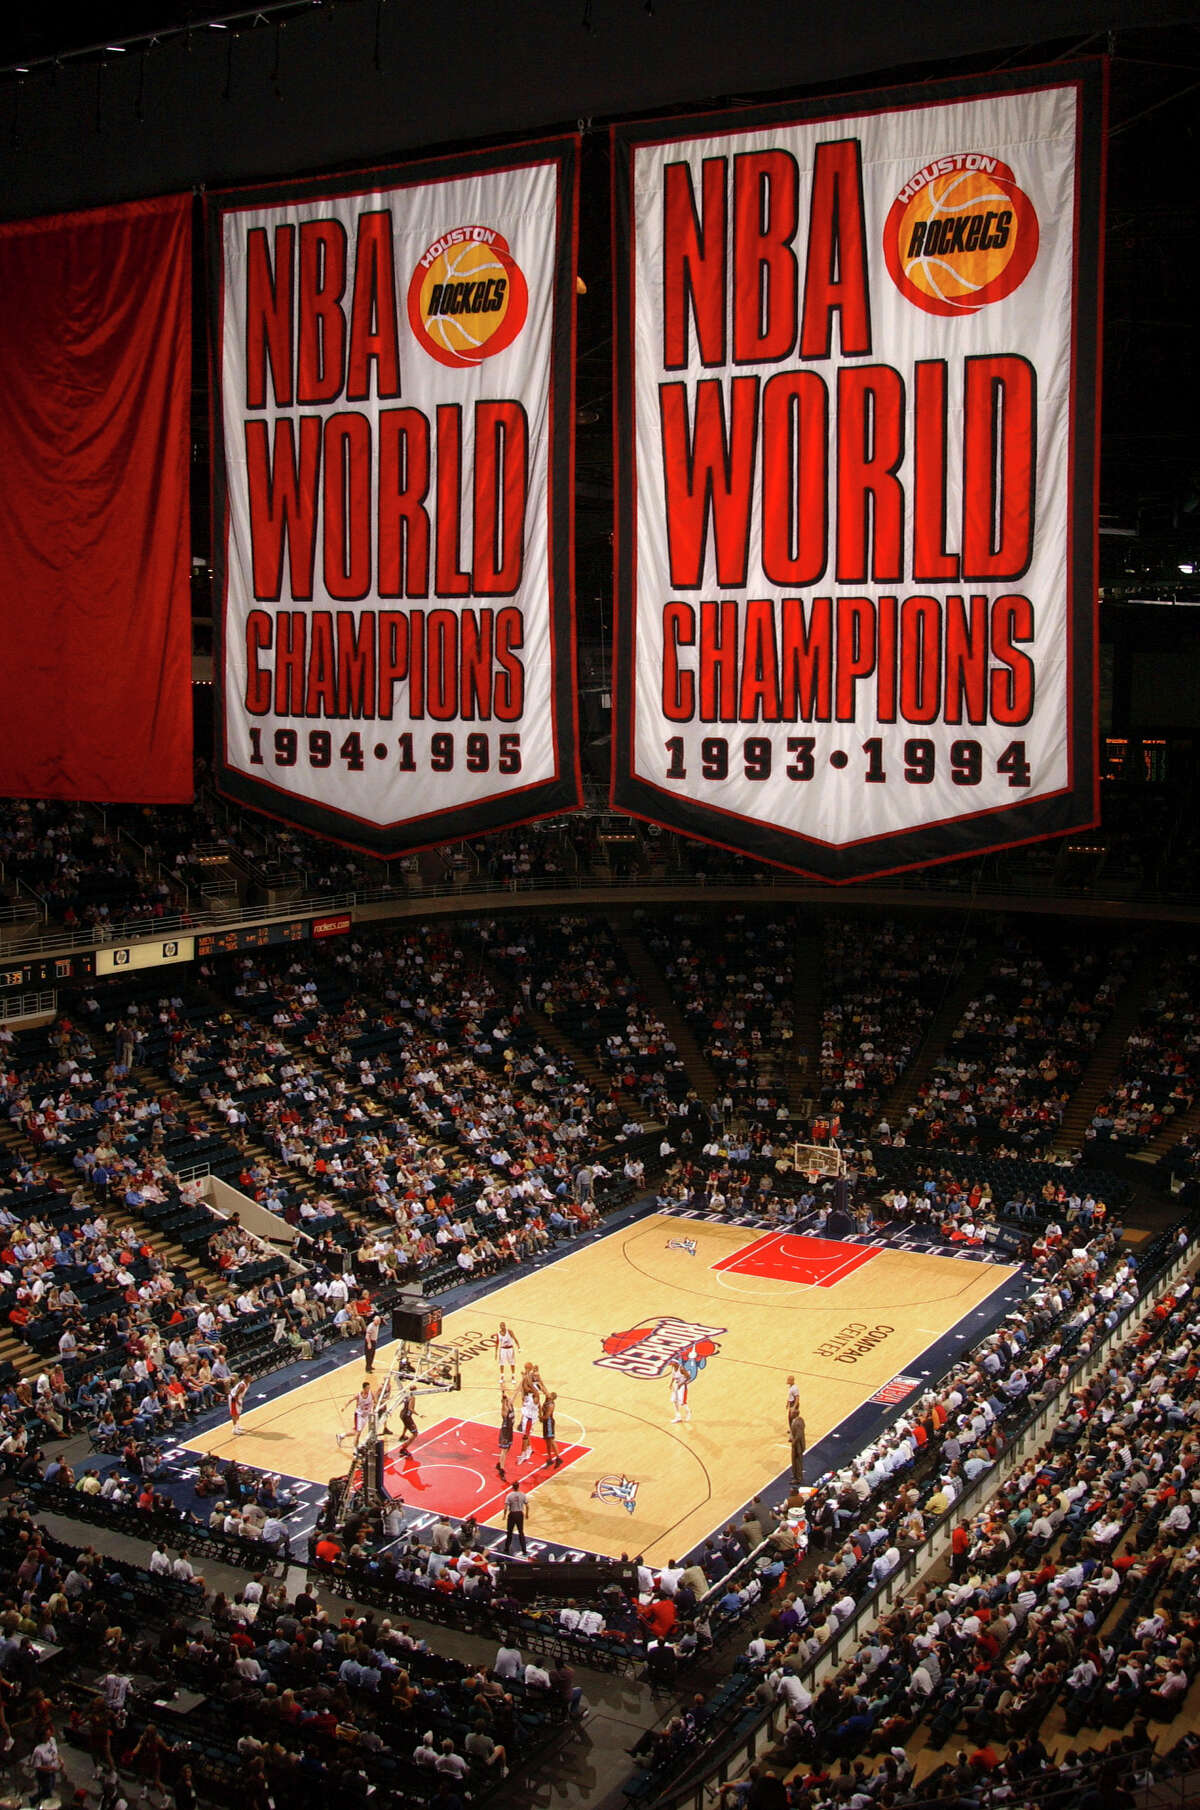 April 16, 2003 - Banners from the glory years of the Houston Rockets - back-to-back NBA championships - fly for the last time from the rafters of Compaq Center. The facility once known as The Summit served as the Rockets' home for 28 years. Compaq Center became Lakewood Church and the Rockets, moved to a downtown facility the next season. The Rockets prevailed in their final home game at the site with a 97-86 win over the Memphis Grizzlies. Â Houston Chronicle